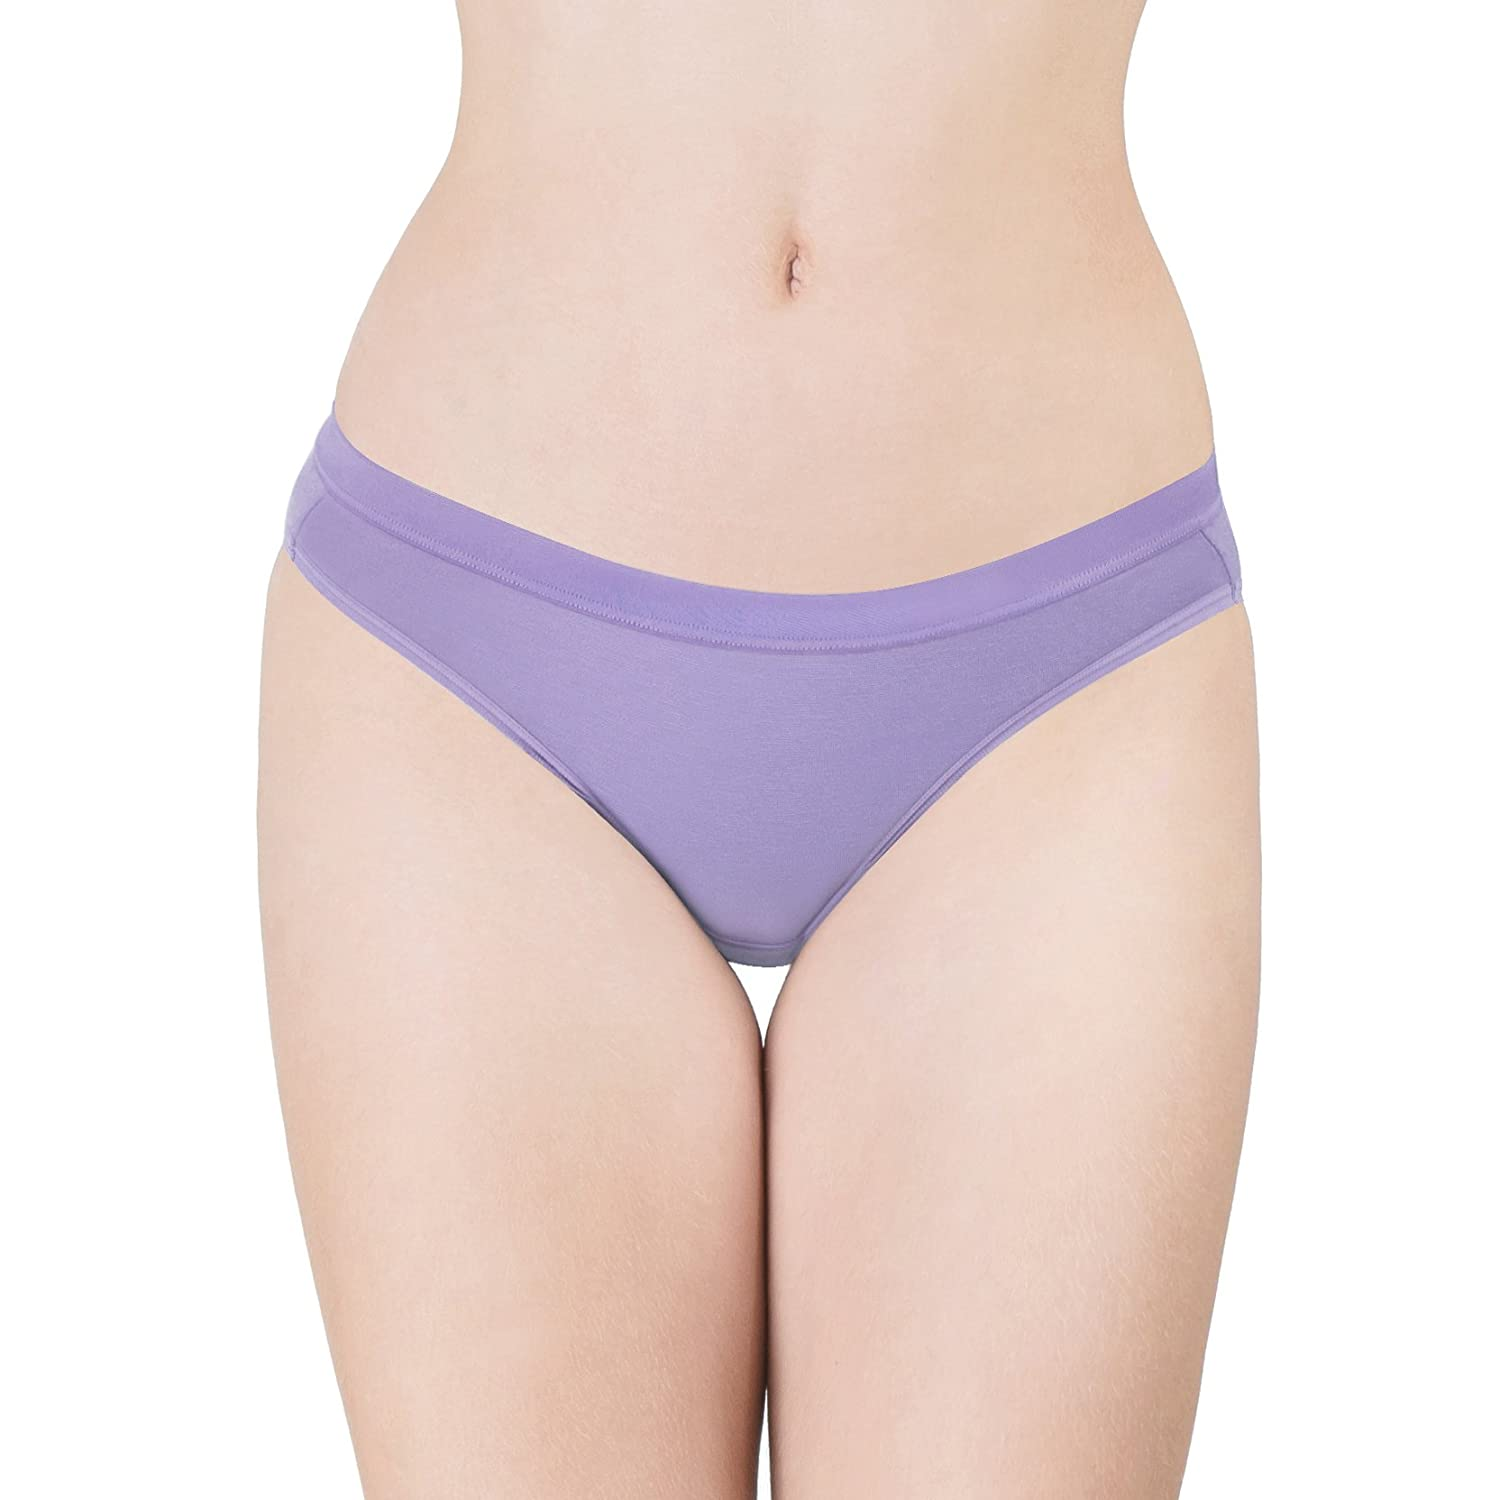 Pure5.5 Womens Classic Hipster 4-Pack pH Balancing Underwear Lingerie Panties aPure